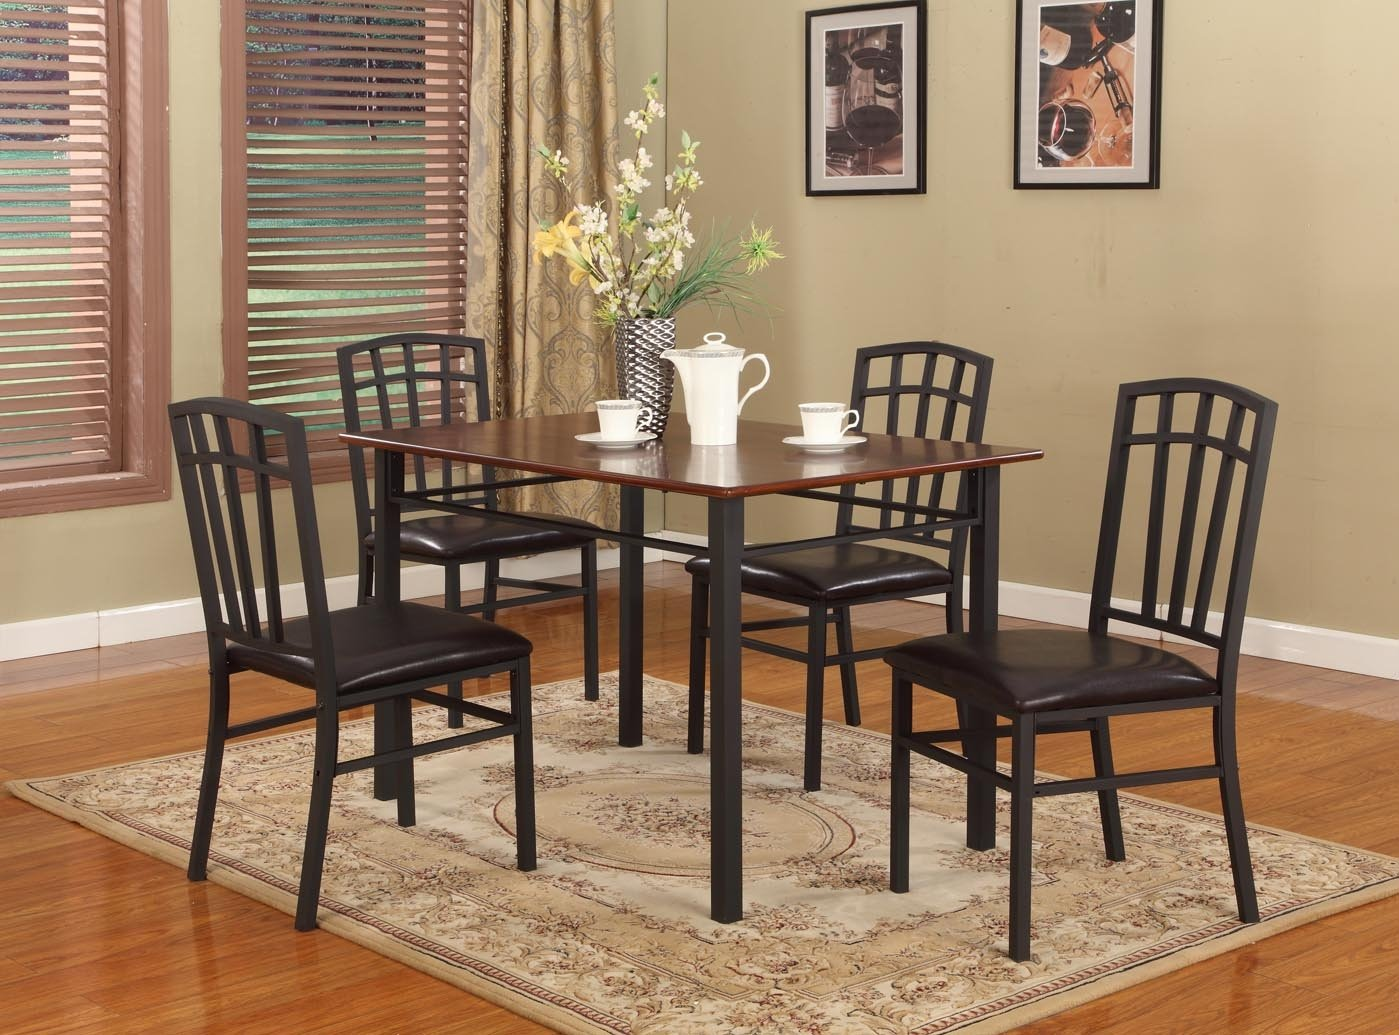 metal dining room sets | Simple assembly required.